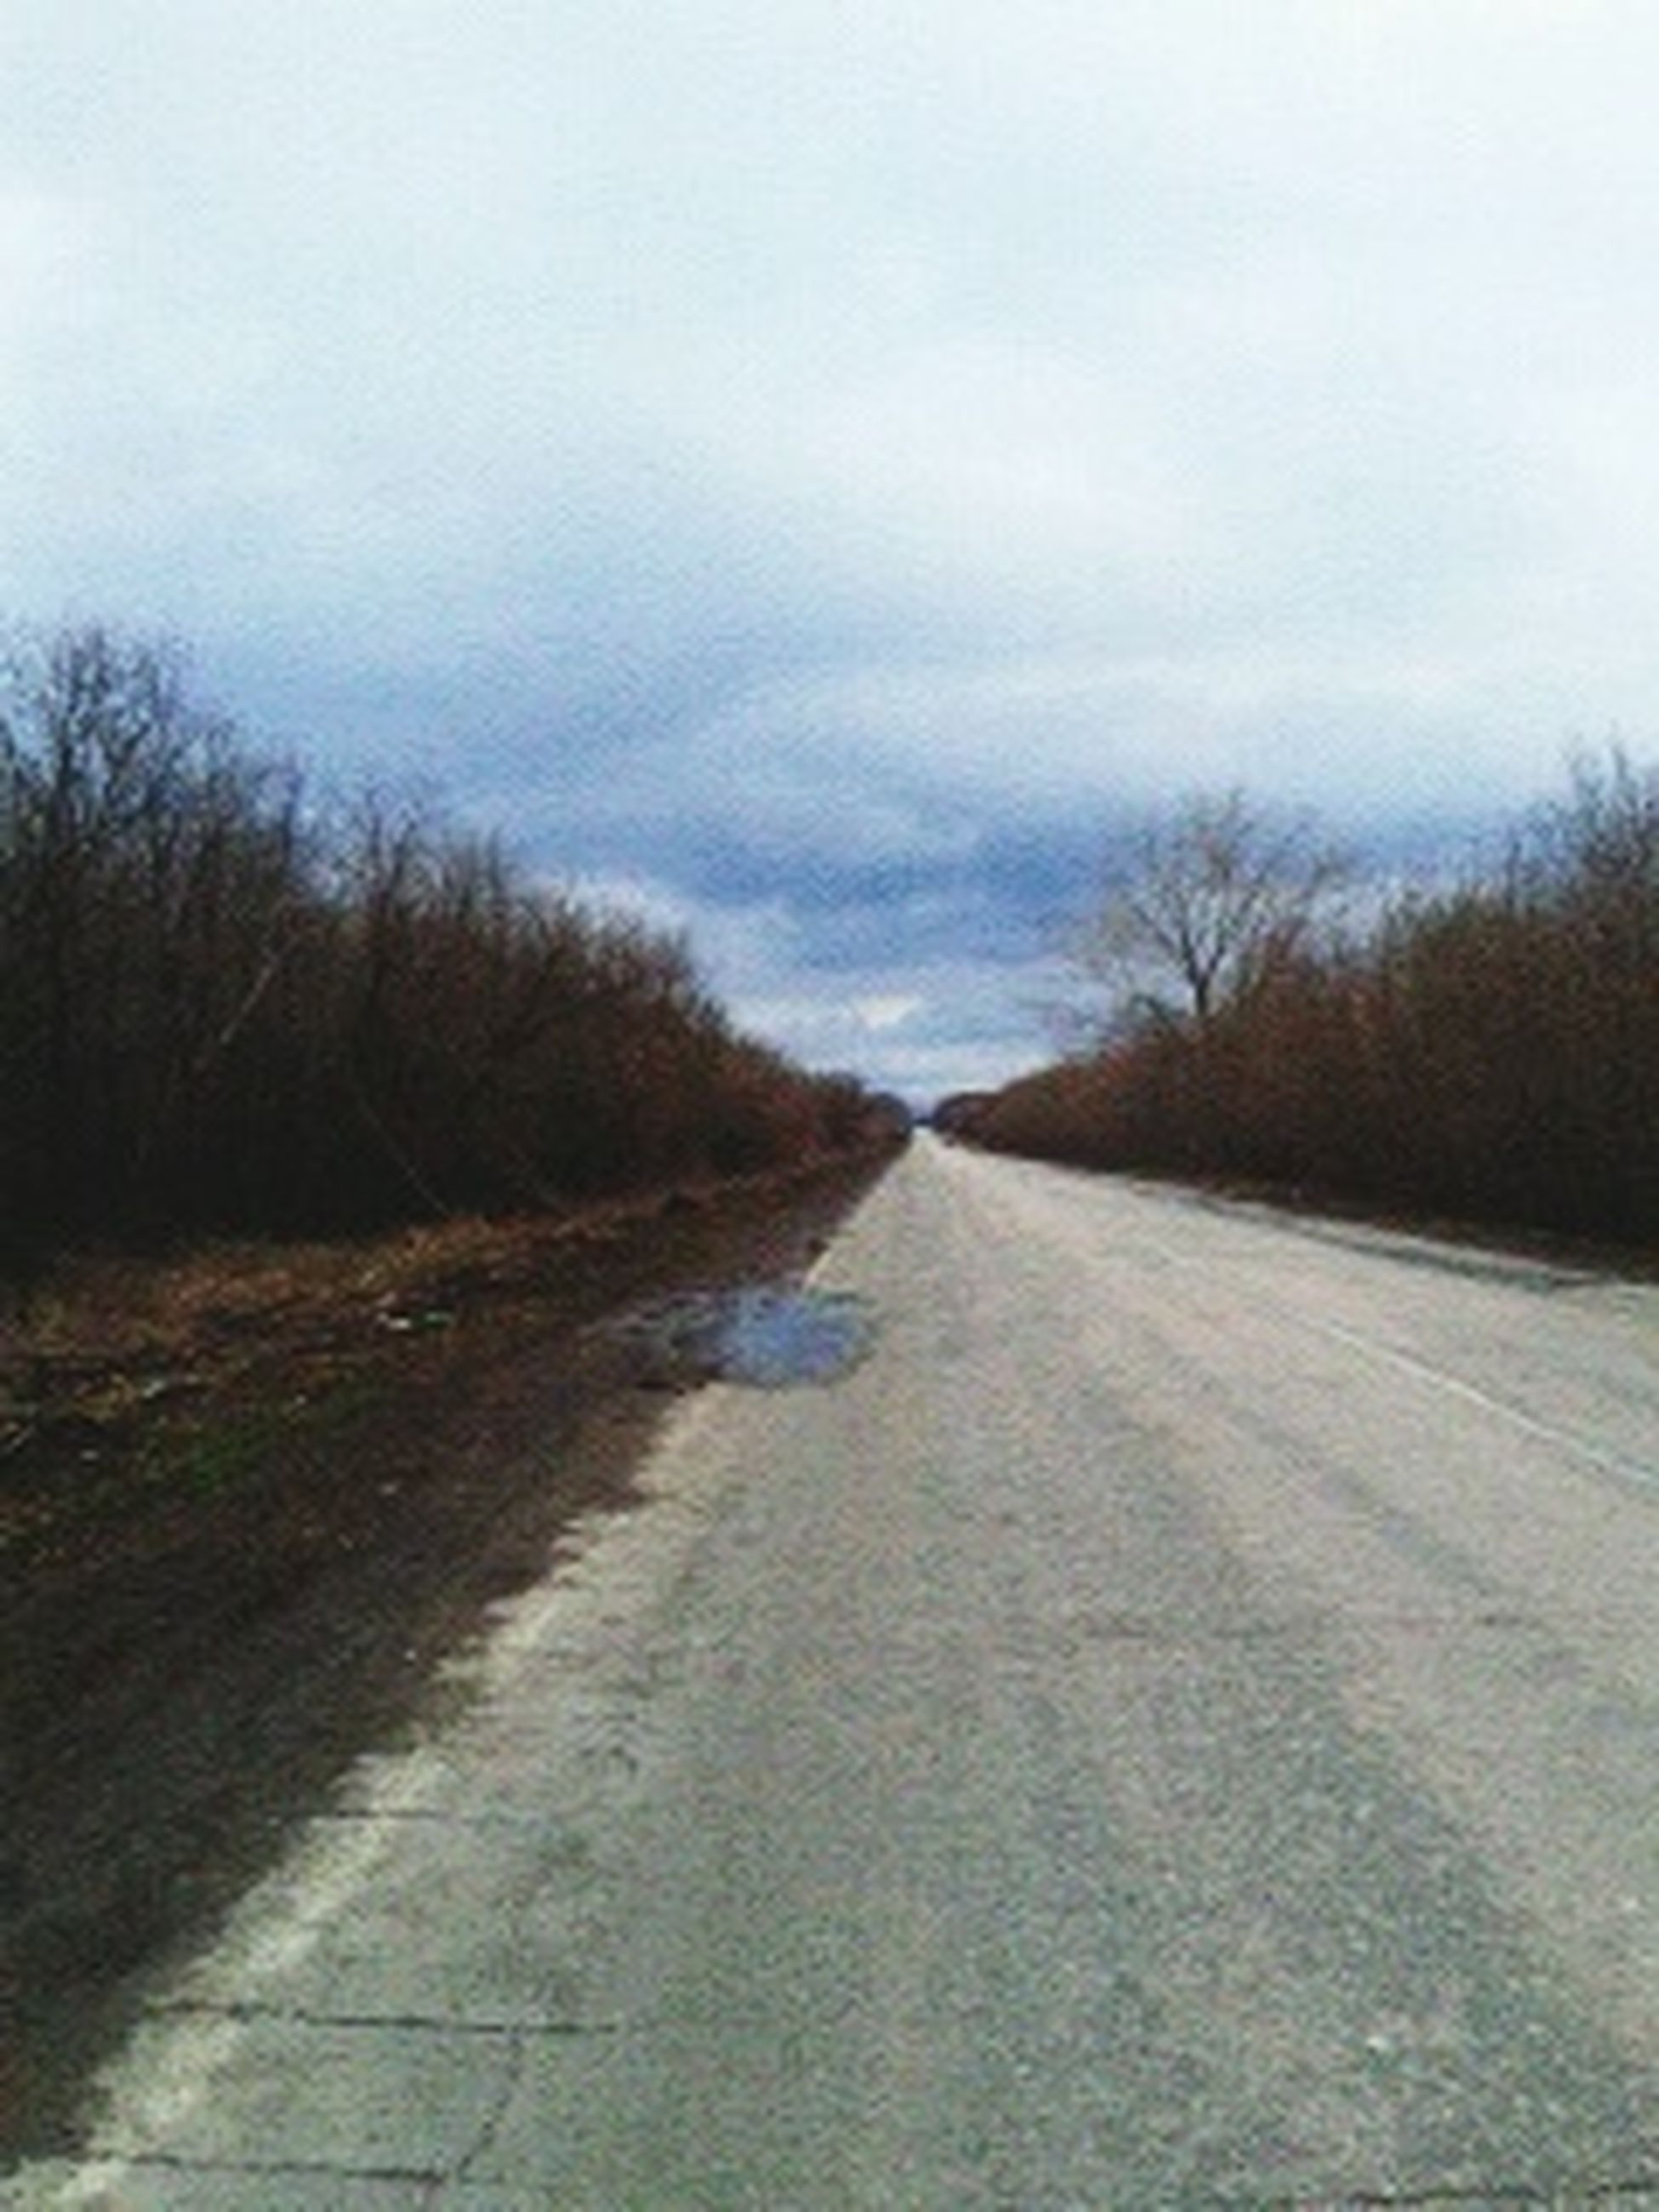 the way forward, diminishing perspective, sky, vanishing point, road, transportation, tranquility, tranquil scene, bare tree, tree, country road, landscape, nature, empty road, long, cloud - sky, surface level, field, dirt road, empty